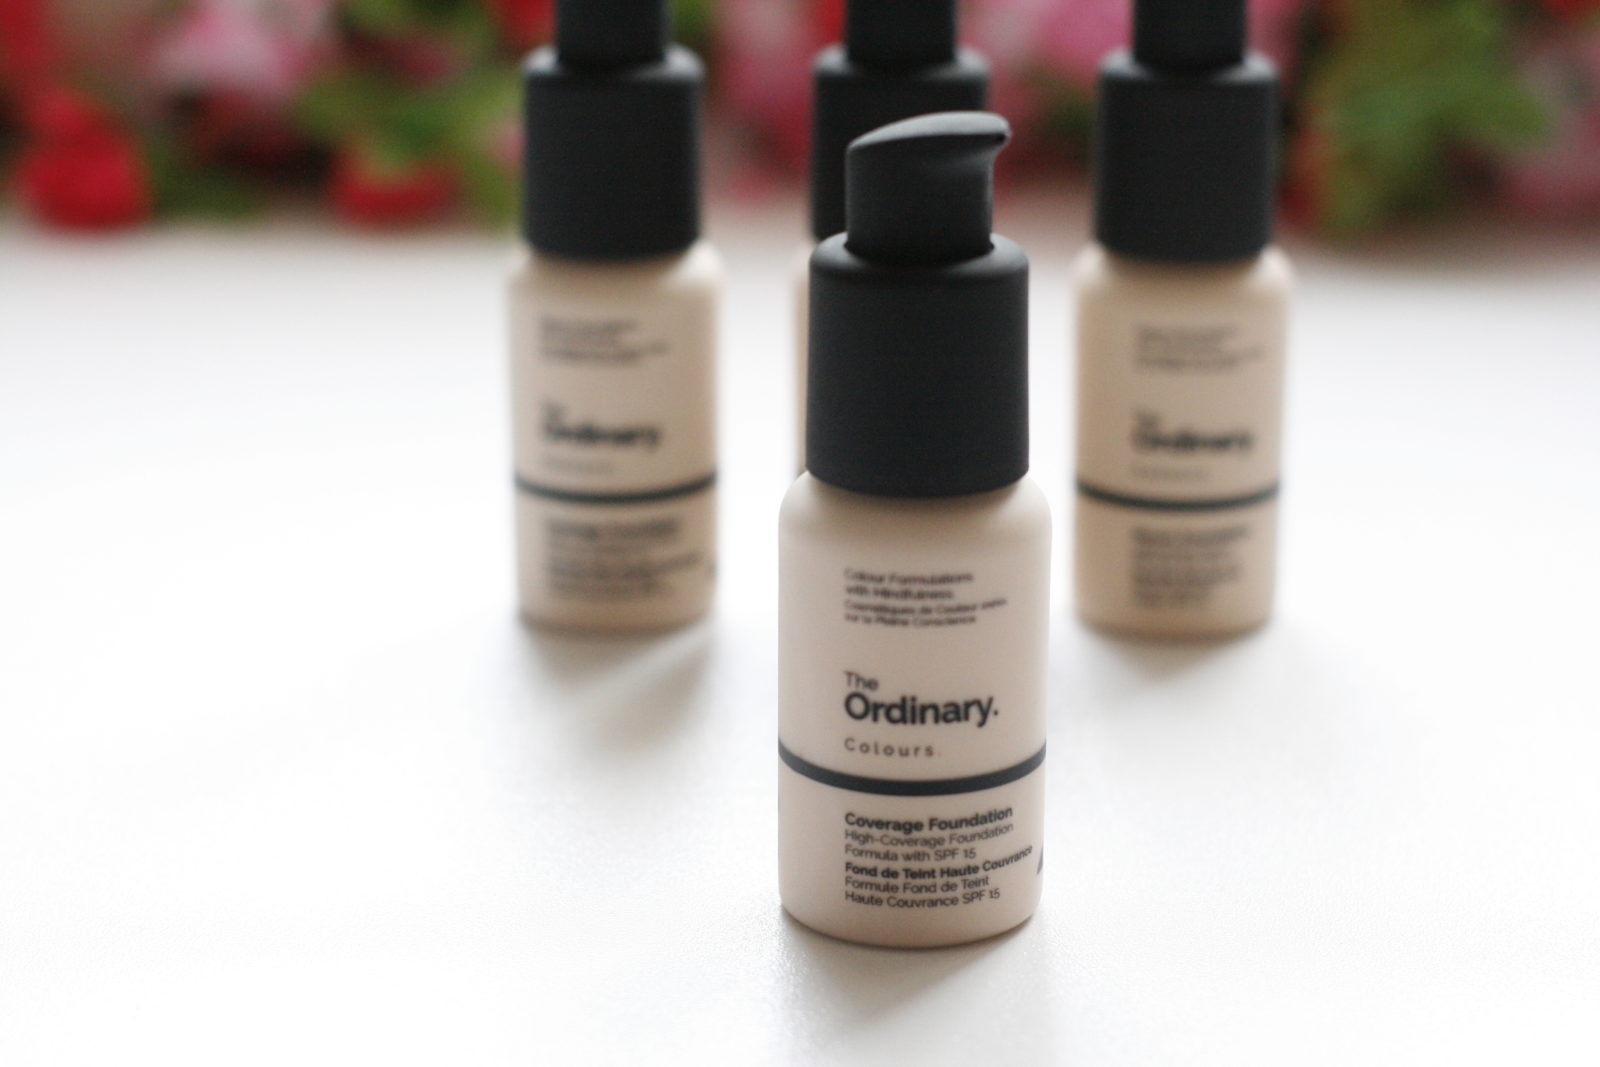 The Ordinary Colours Serum Foundation Review